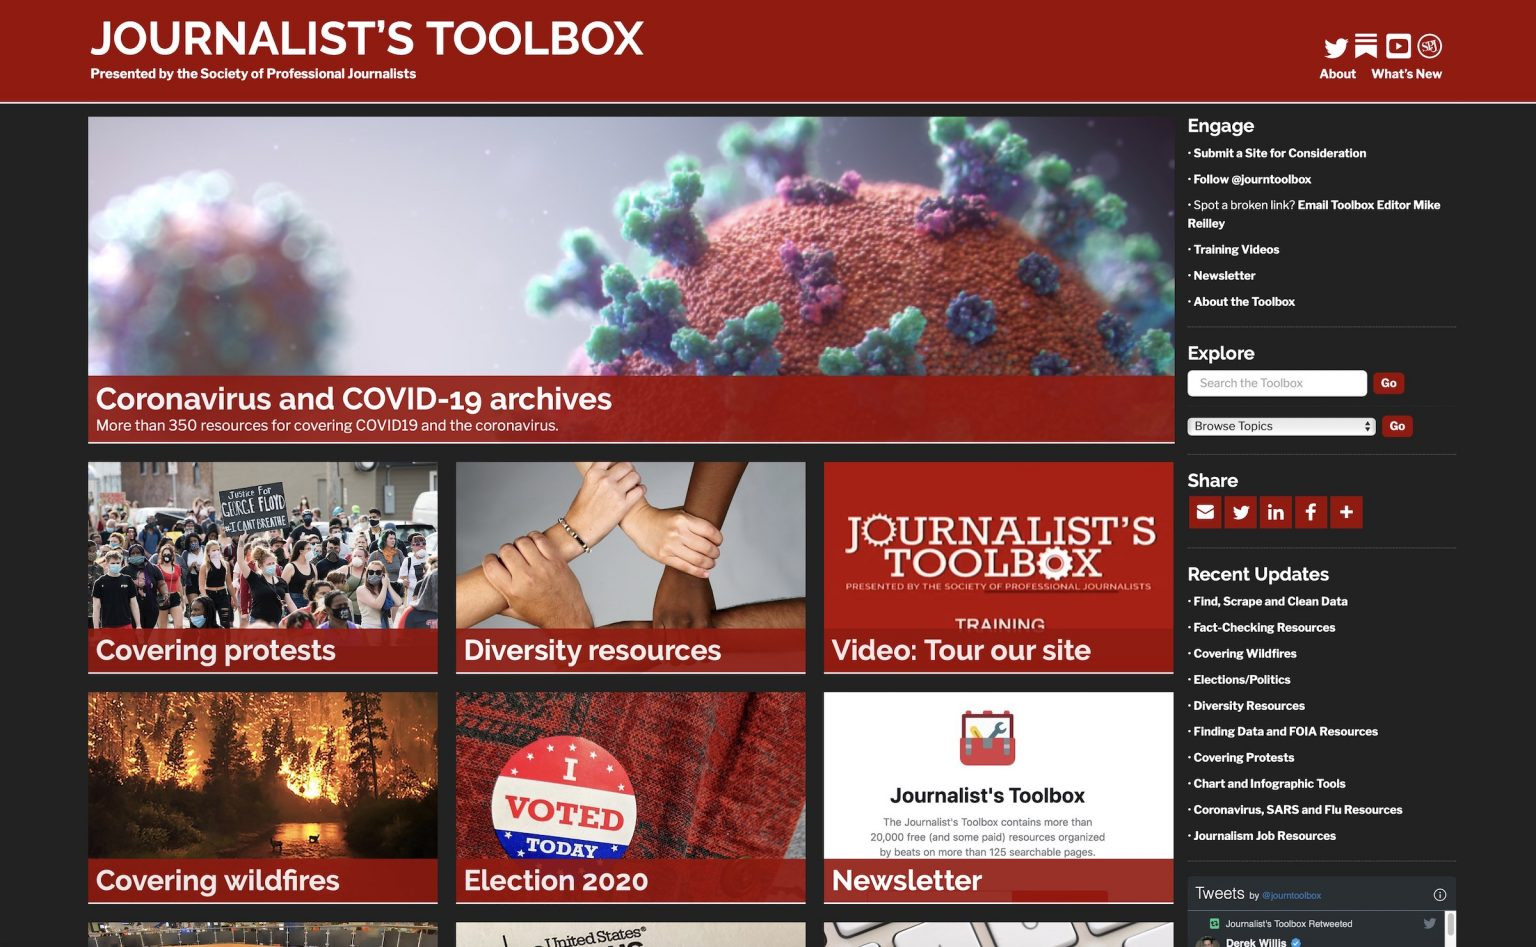 The Journalist's Toolbox (Or: How to rebuild a house from the ground up without getting any dirt on ...